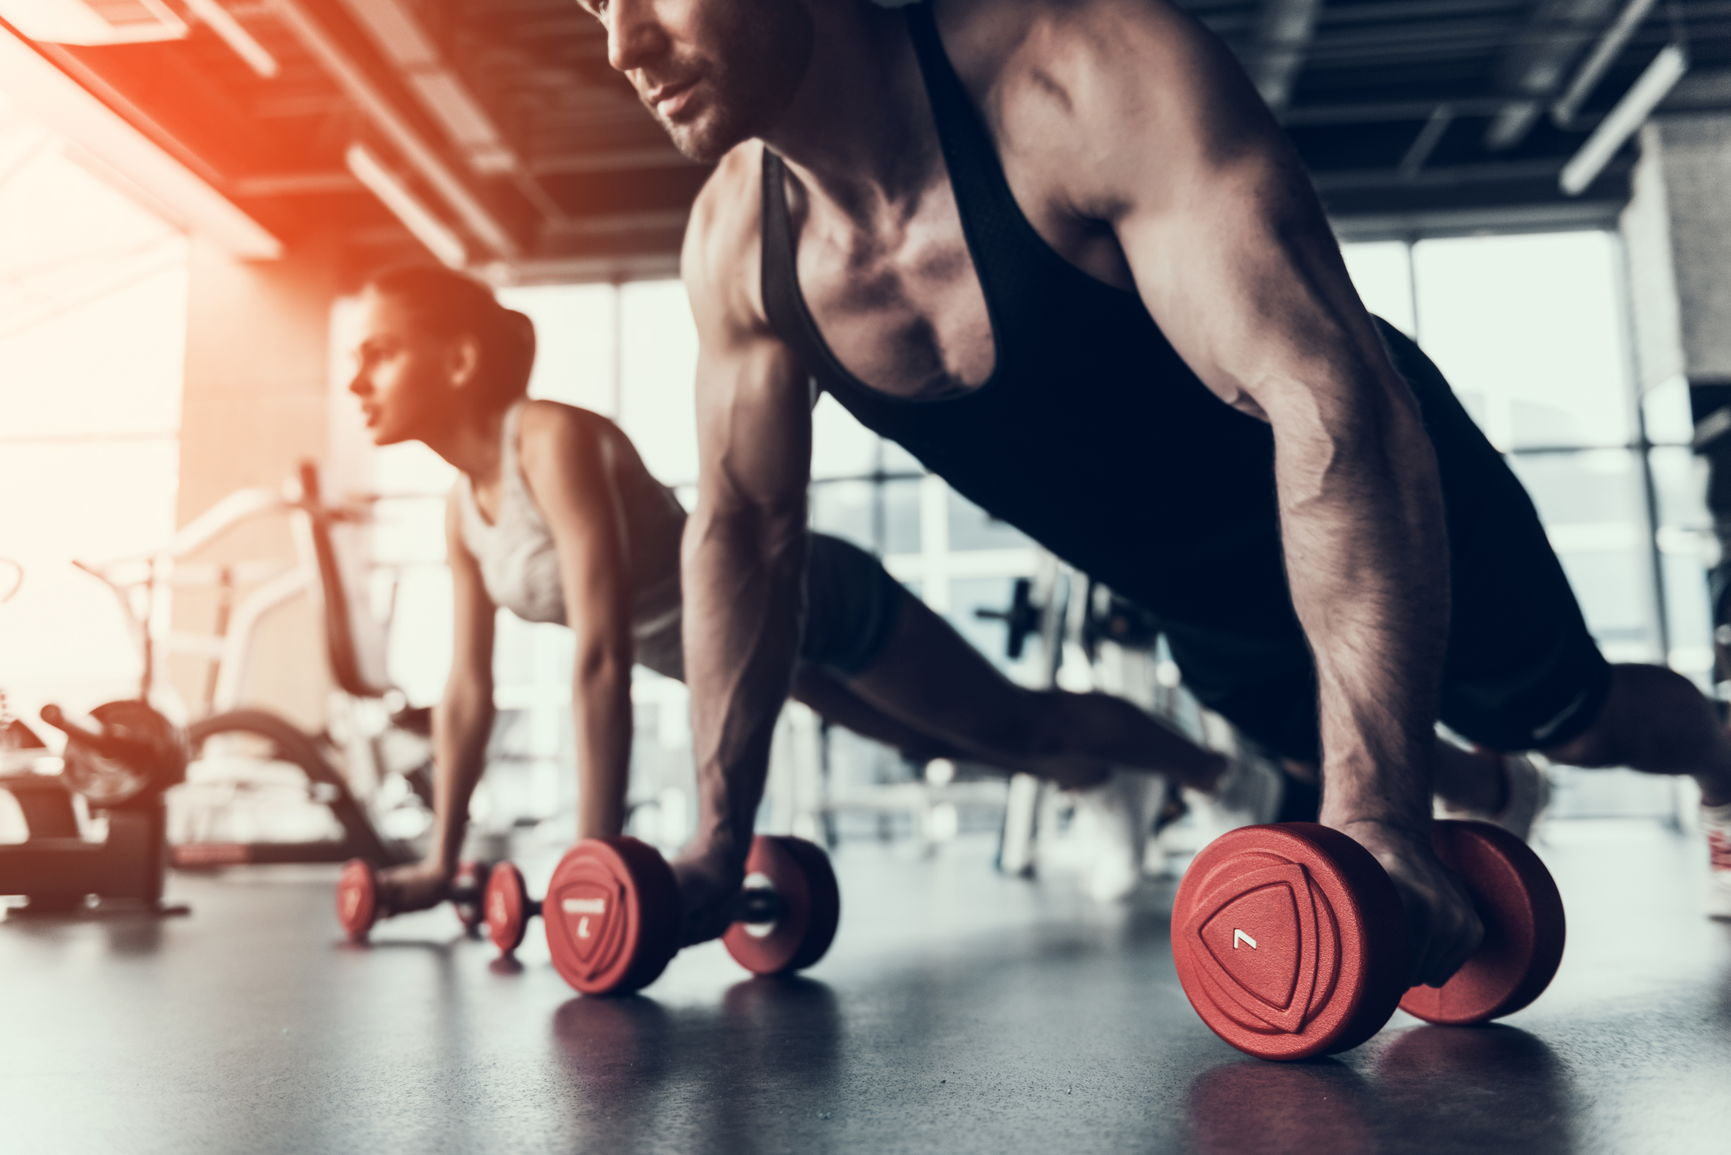 strength training can increase your metabolism and lose weight